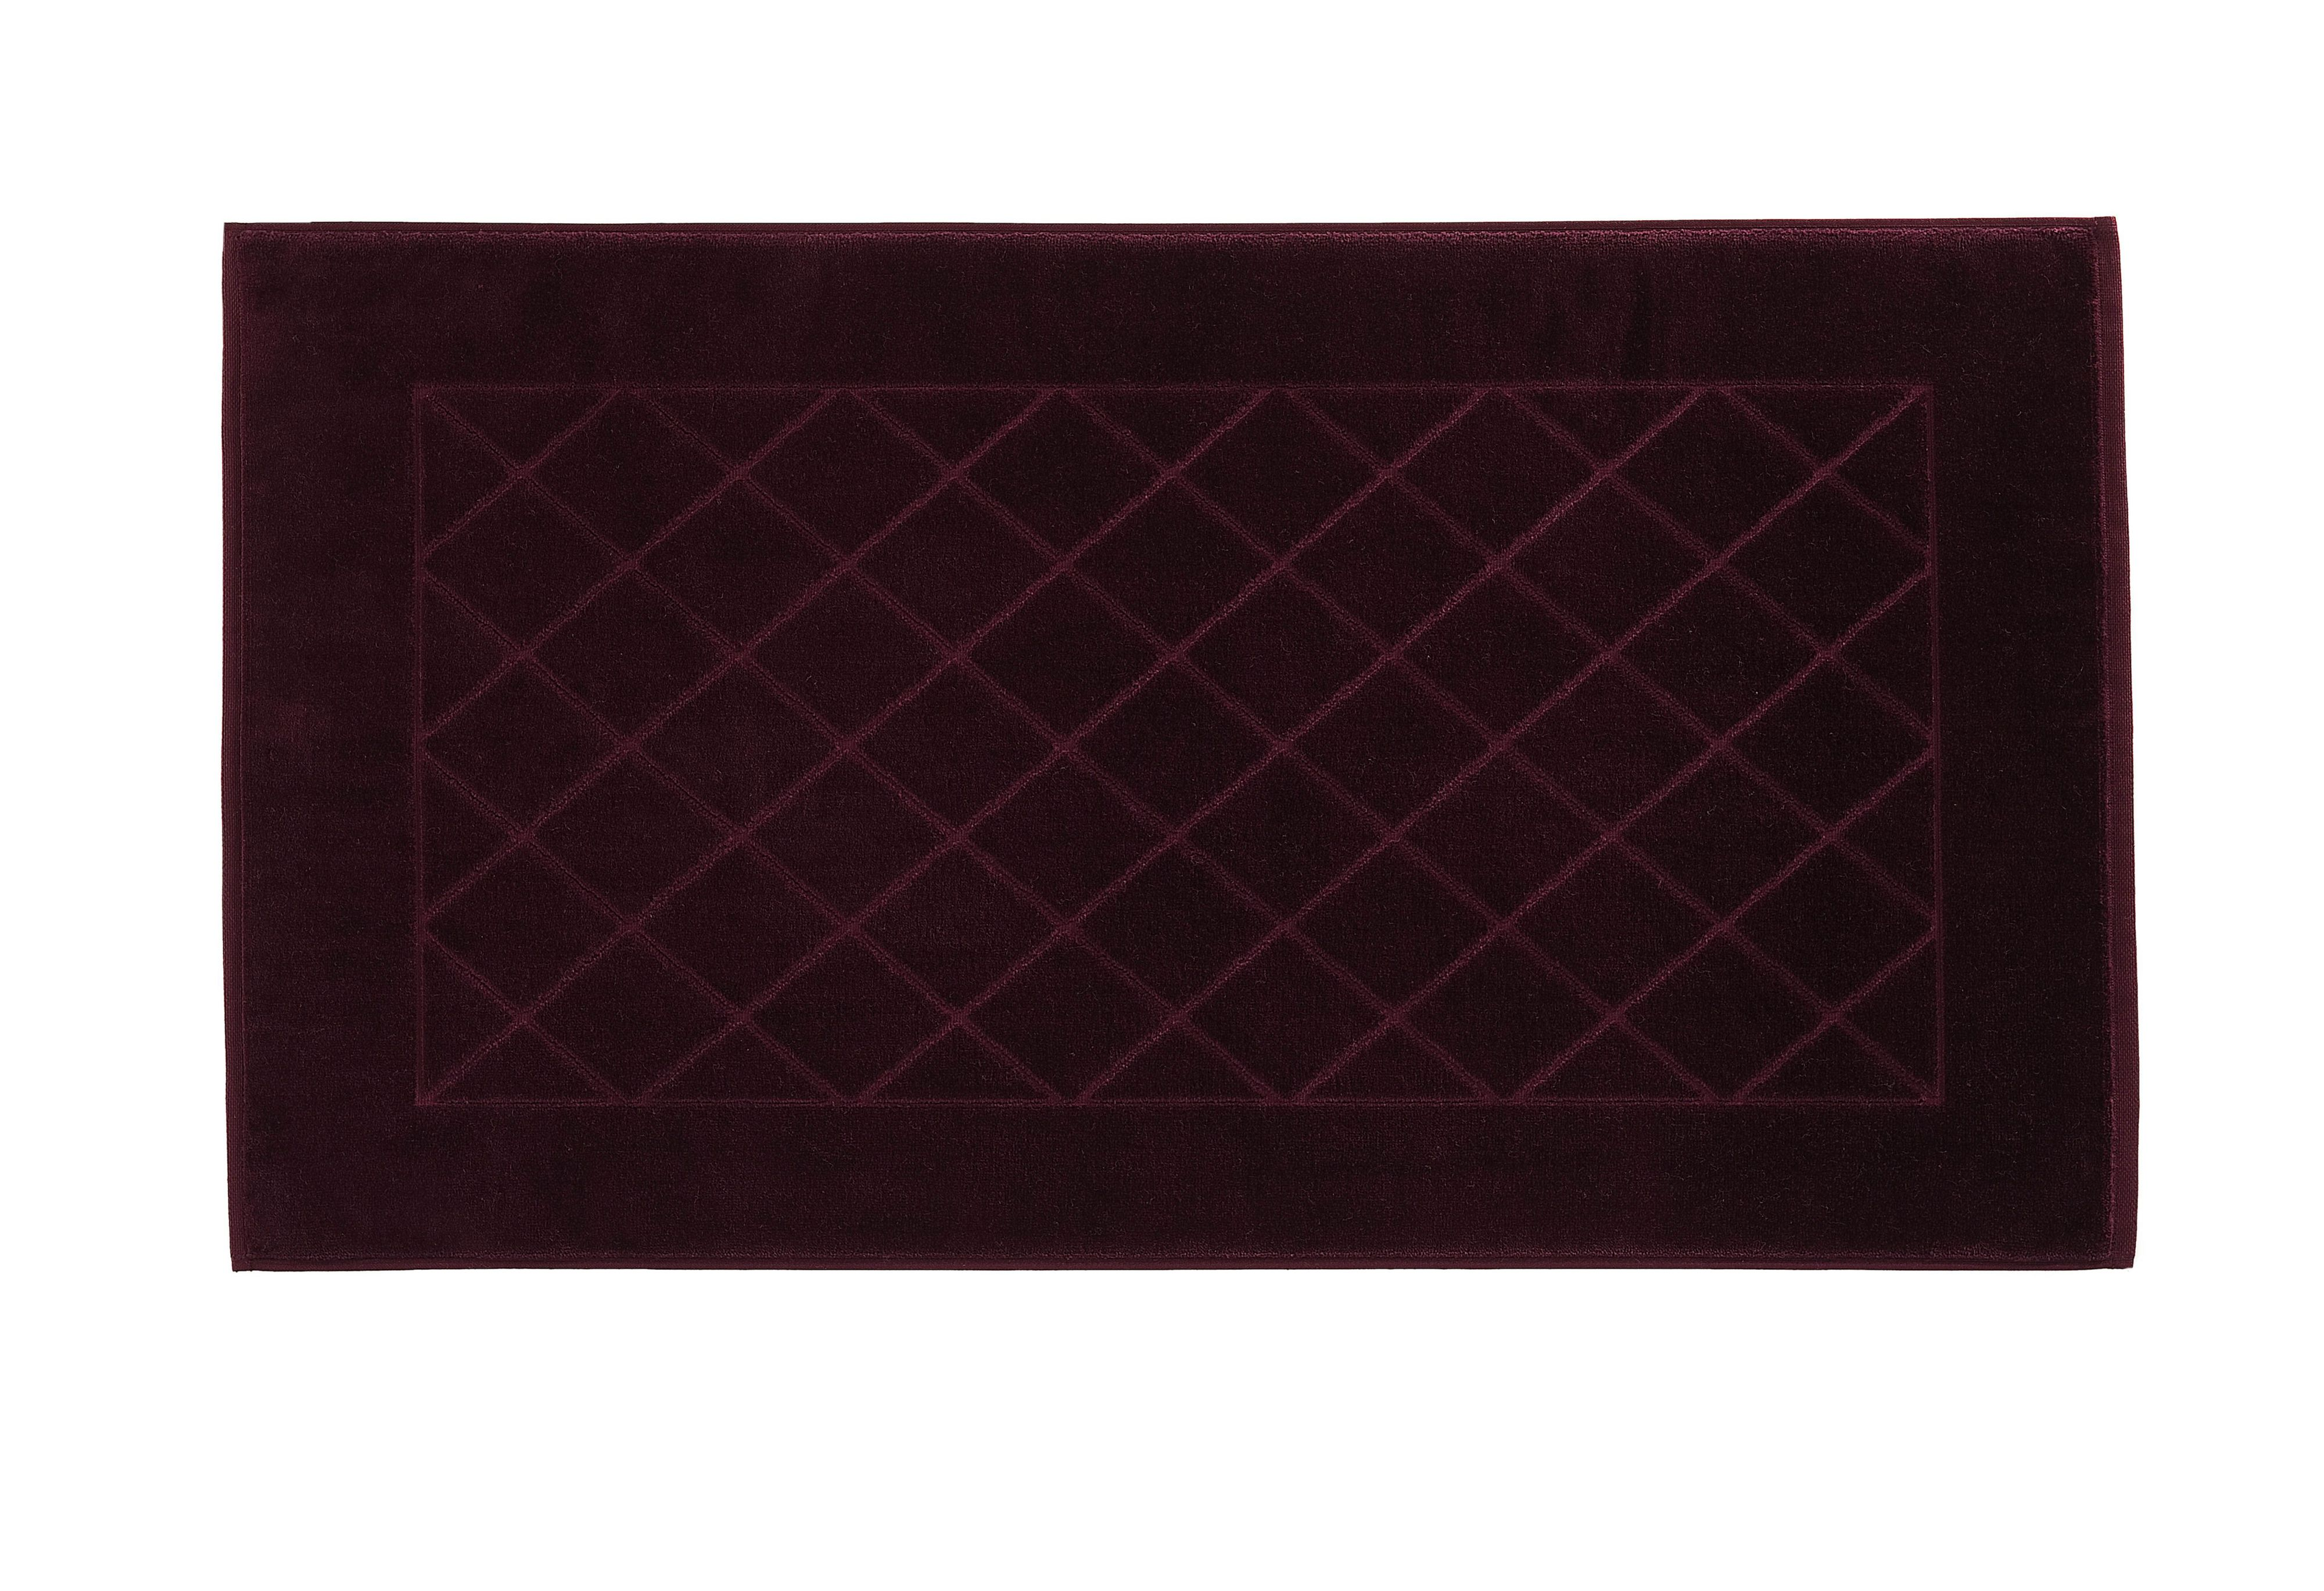 Dreams bath mat range in berry